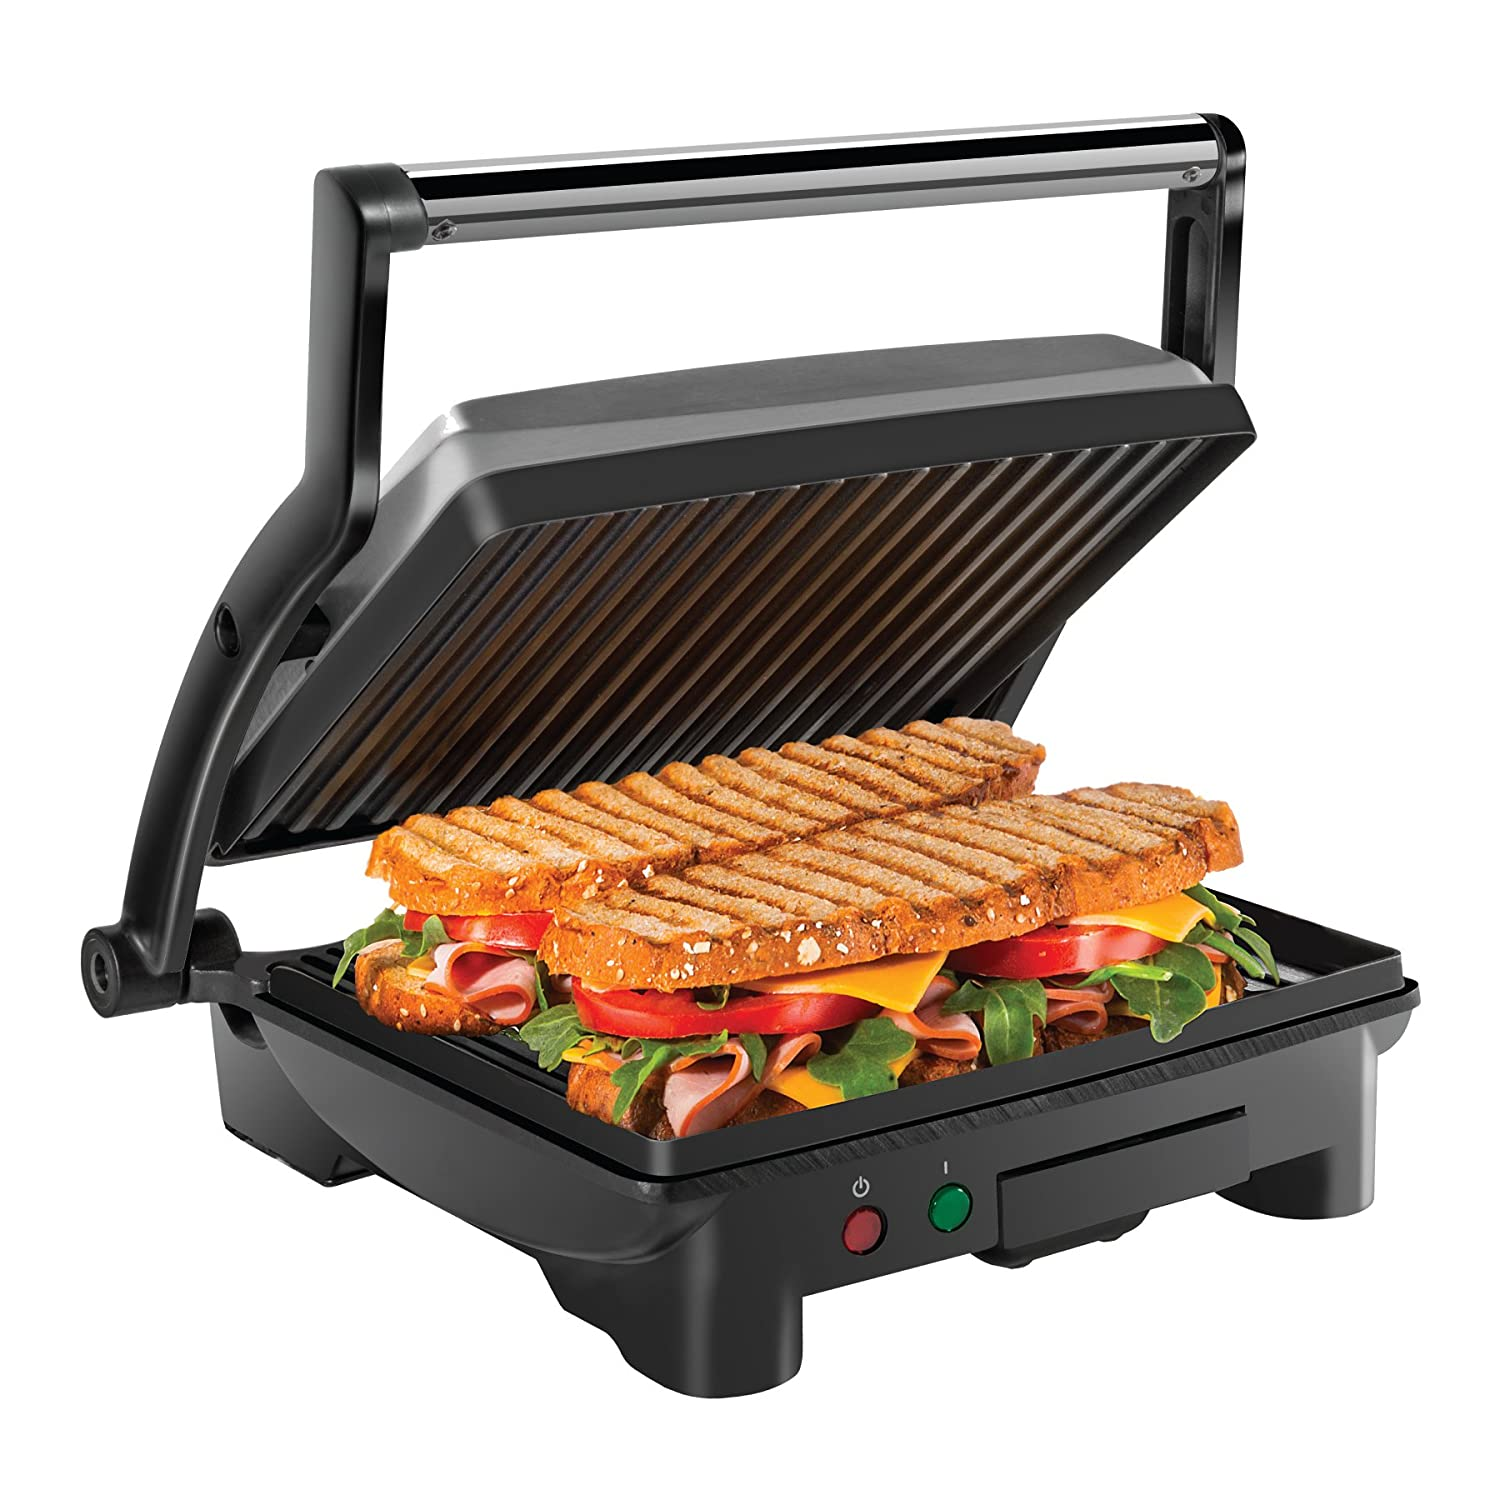 Chefman Panini Press Grill and Gourmet Sandwich Maker, Non-Stick Coated Plates, Opens 180 Degrees to Fit Any Type or Size of Food, Stainless Steel Surface and Removable Drip Tray - 4 Slice